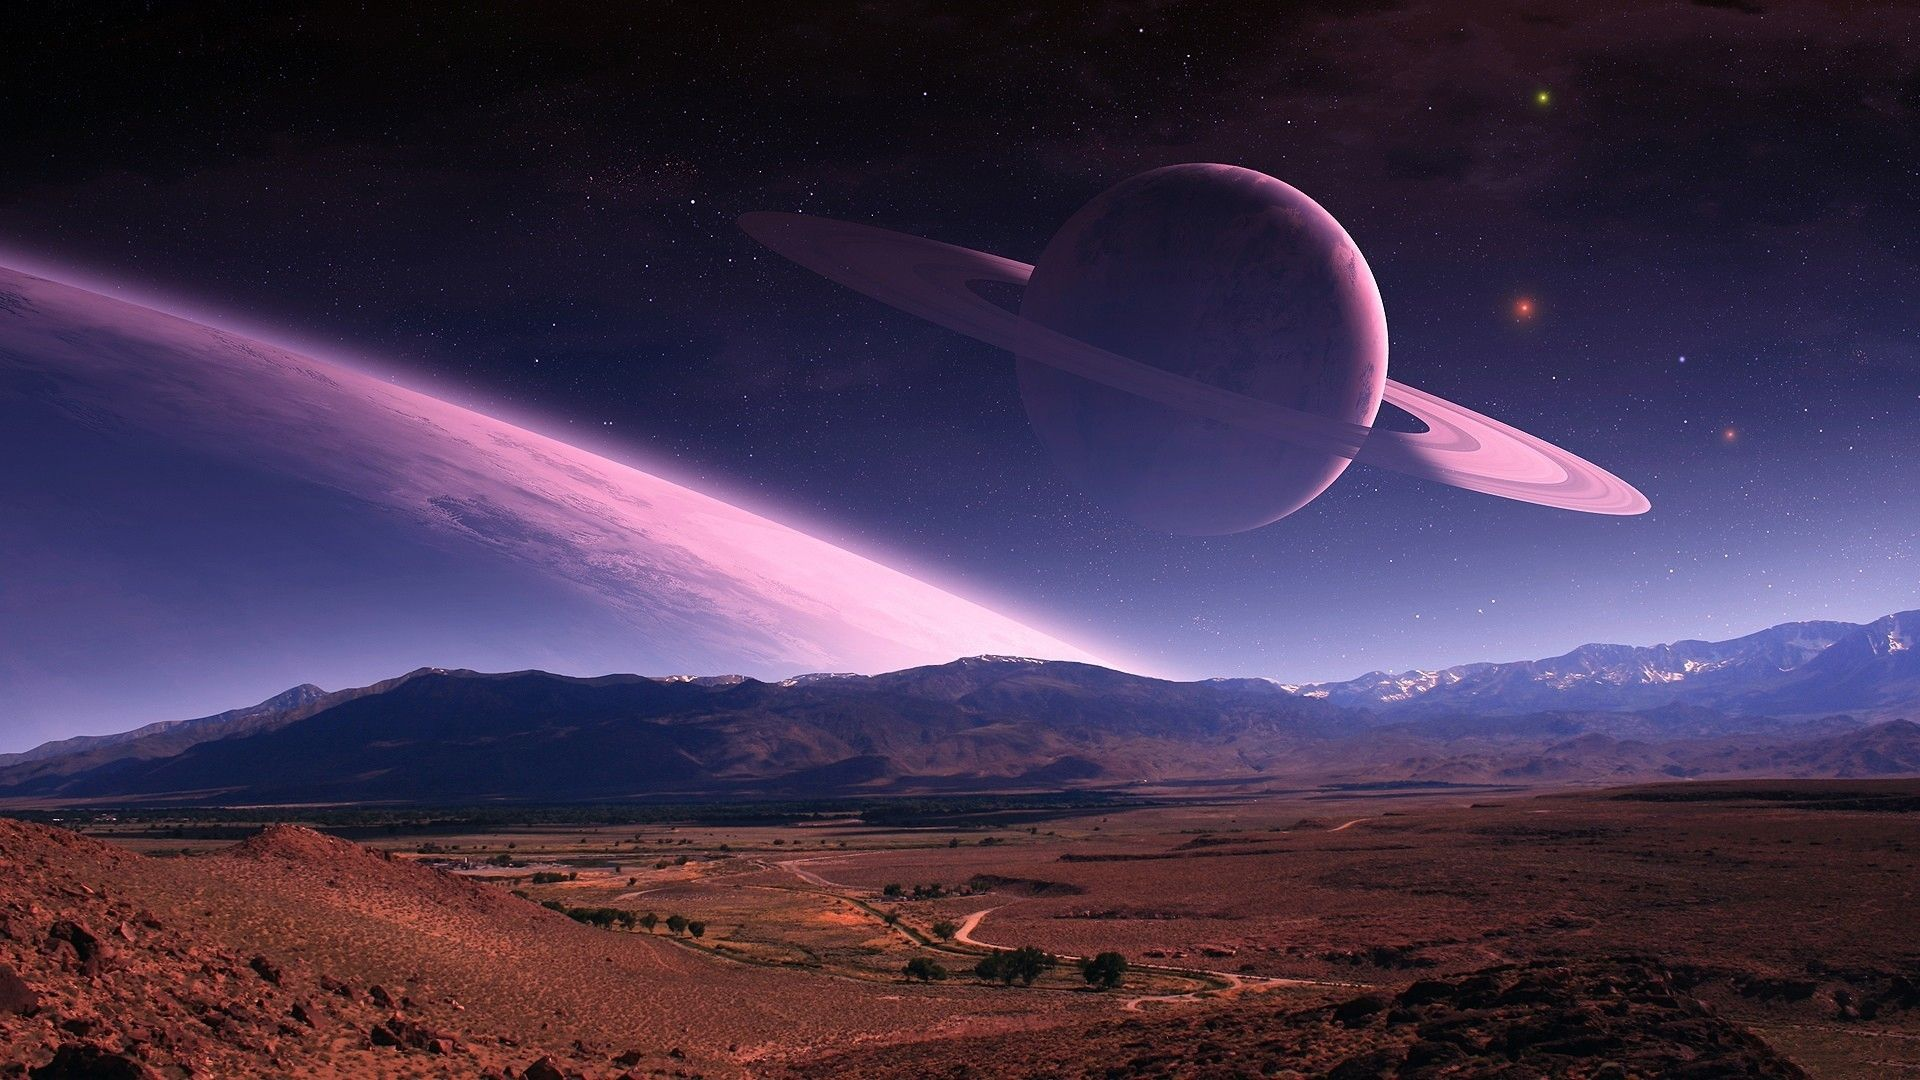 Hd Planet Wallpaper Imaginary Landscapes Pinterest Planets